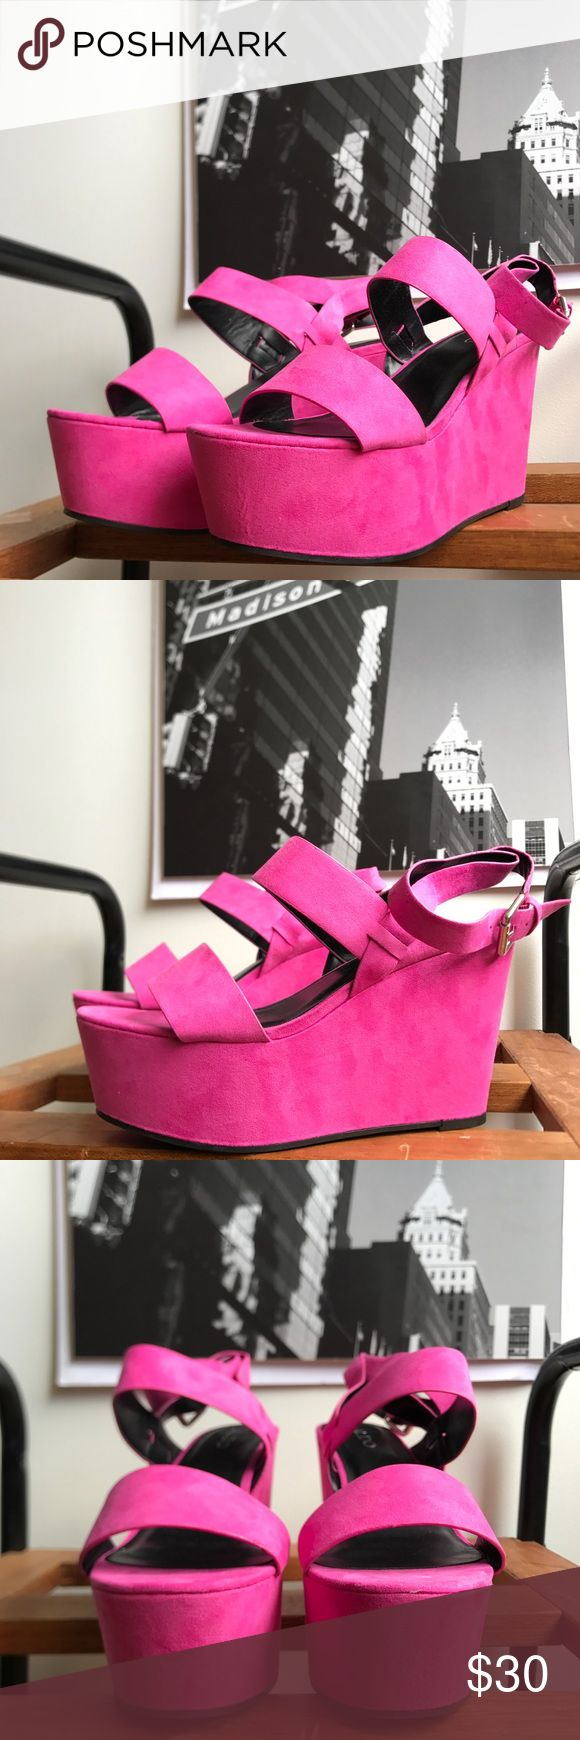 🙌🏾Brand New Aldo Wedges #0188AO Brand new faux suede hot pink open toe platform wedge sandals. Notice the gold metal detail on the toe strap area. These are sure to draw attention perfect for date night!! #pink #wedges #aldo #women #size8.5 #hotpink #chic #fashion #platforms Aldo Shoes Wedges